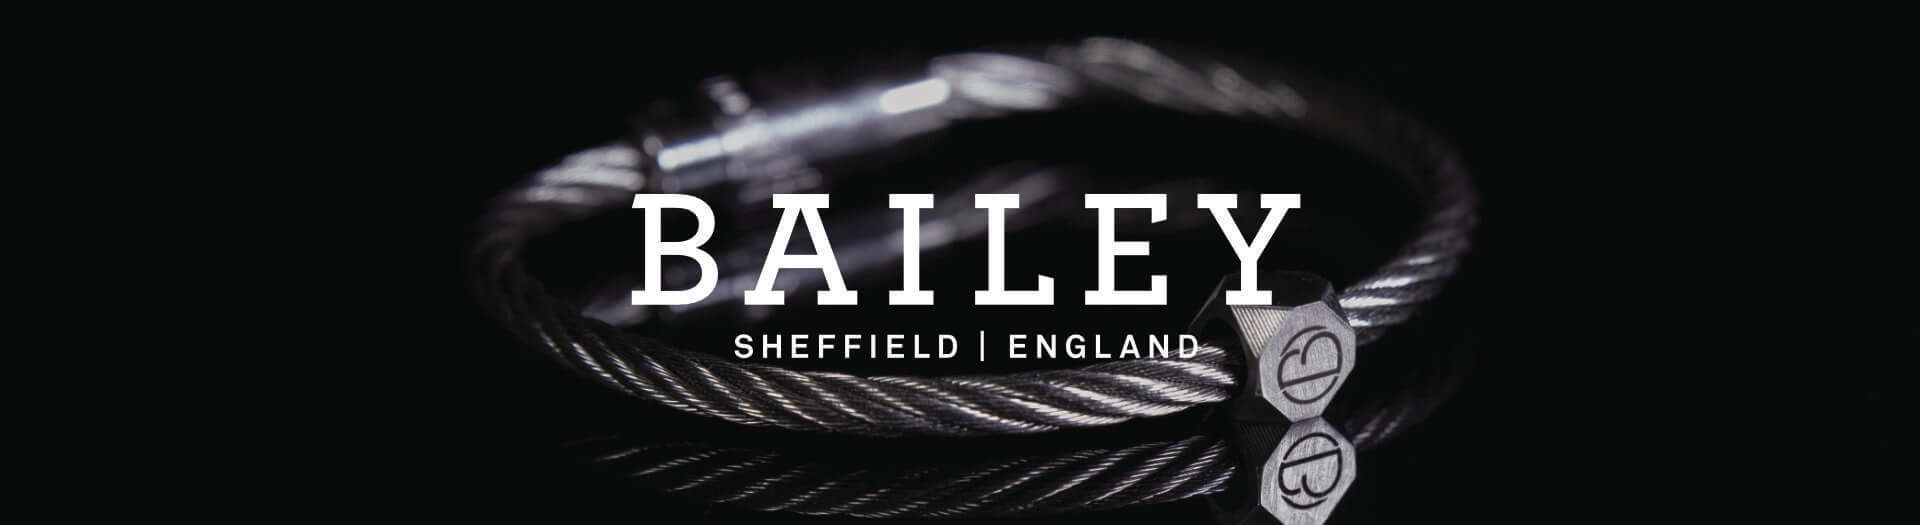 1920x525 Baily of sheffield header with logo